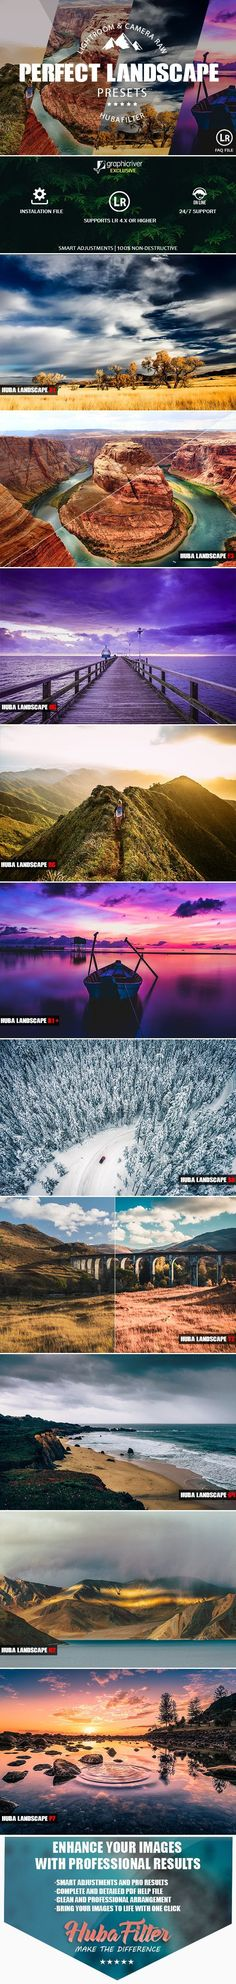 30 Perfect Landscape Lightroom & Camera RAW Presets on Behance